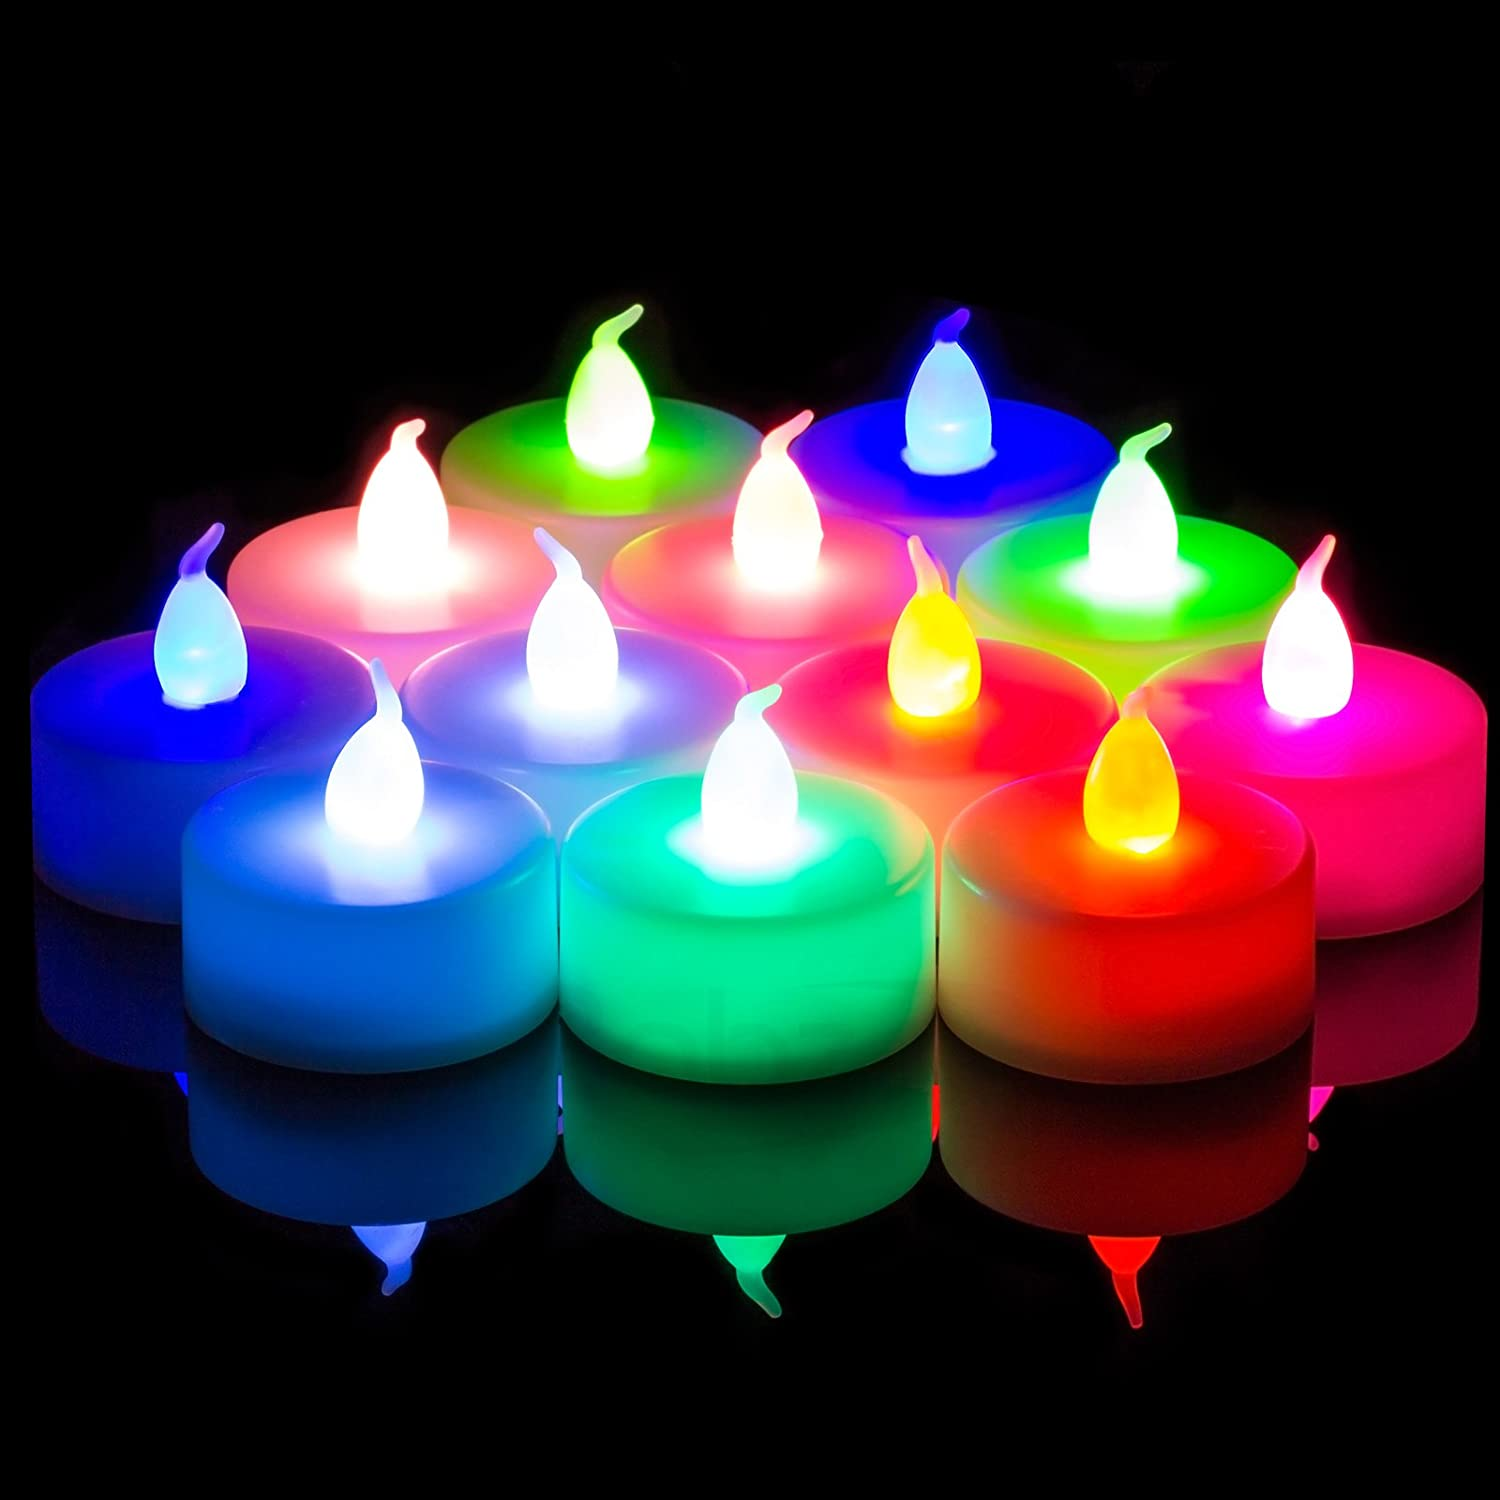 Babz® 12 x Colour Changing LED Flickering Candle Set Battery Operated - Flickers Like a Real Candle Battery Operated Tealight Candles Flameless Candle Wedding Tea Light